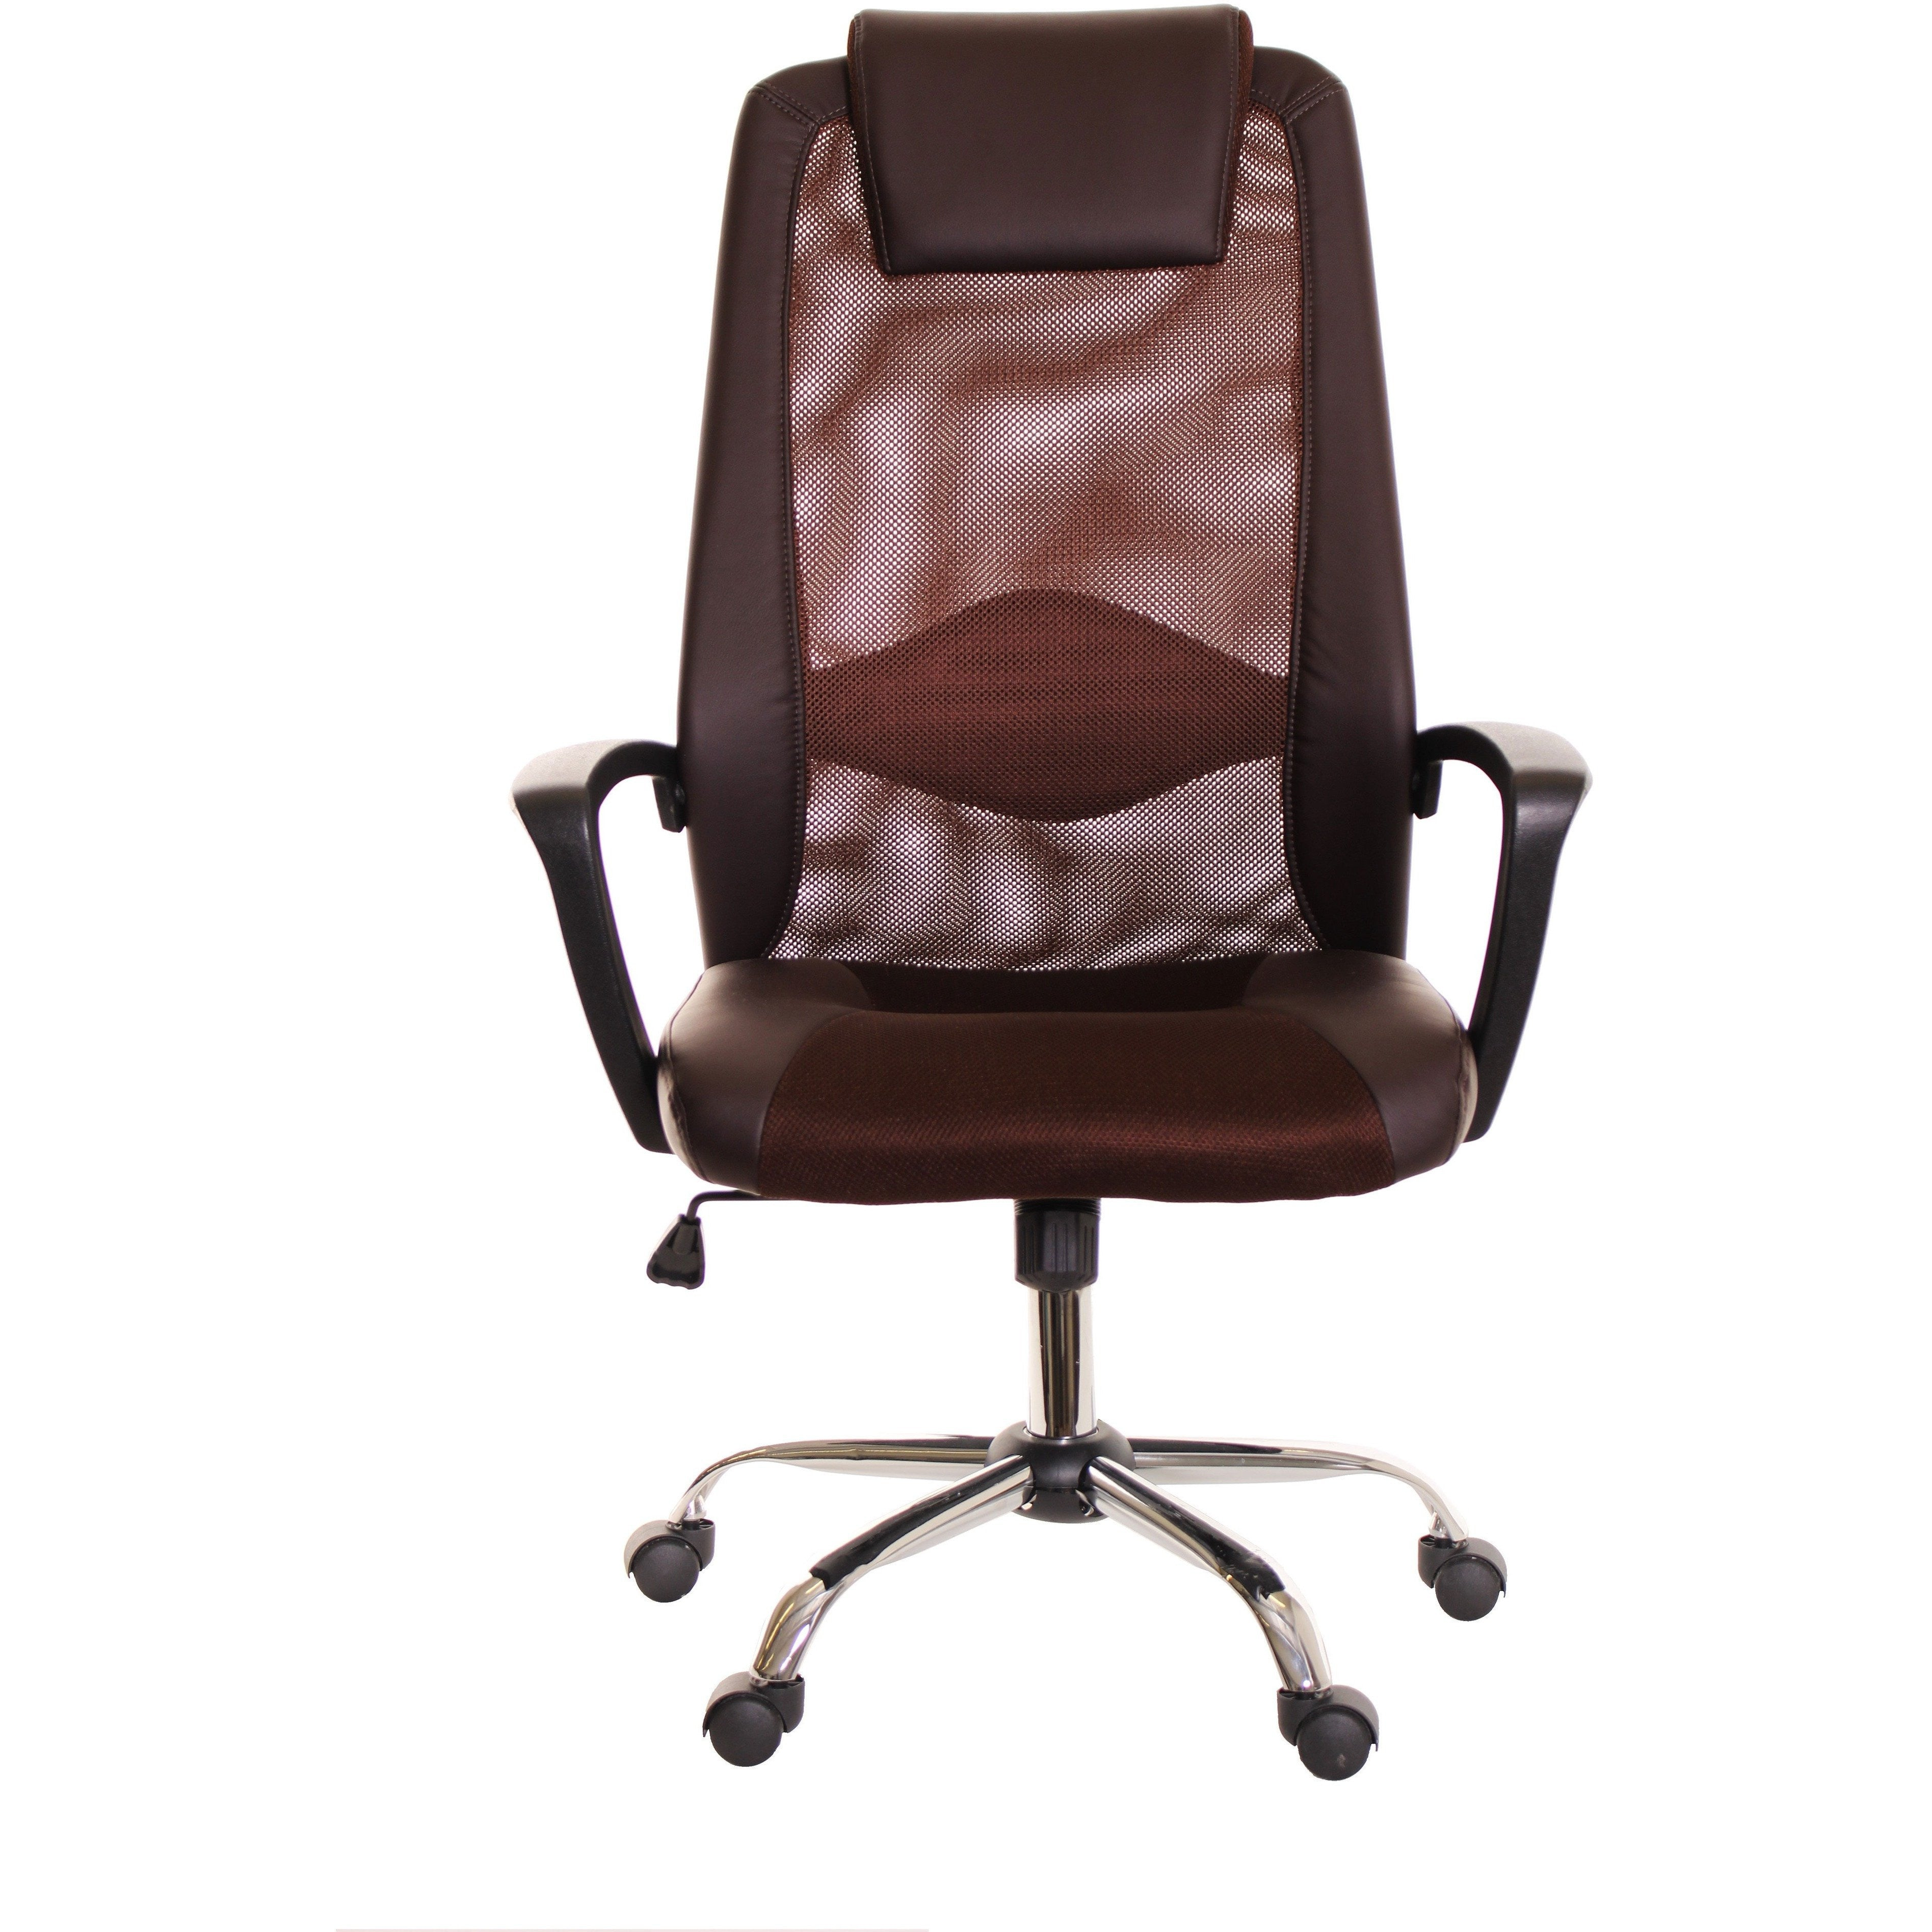 Brown Mesh and Leather Task fice Chair with Headrest by